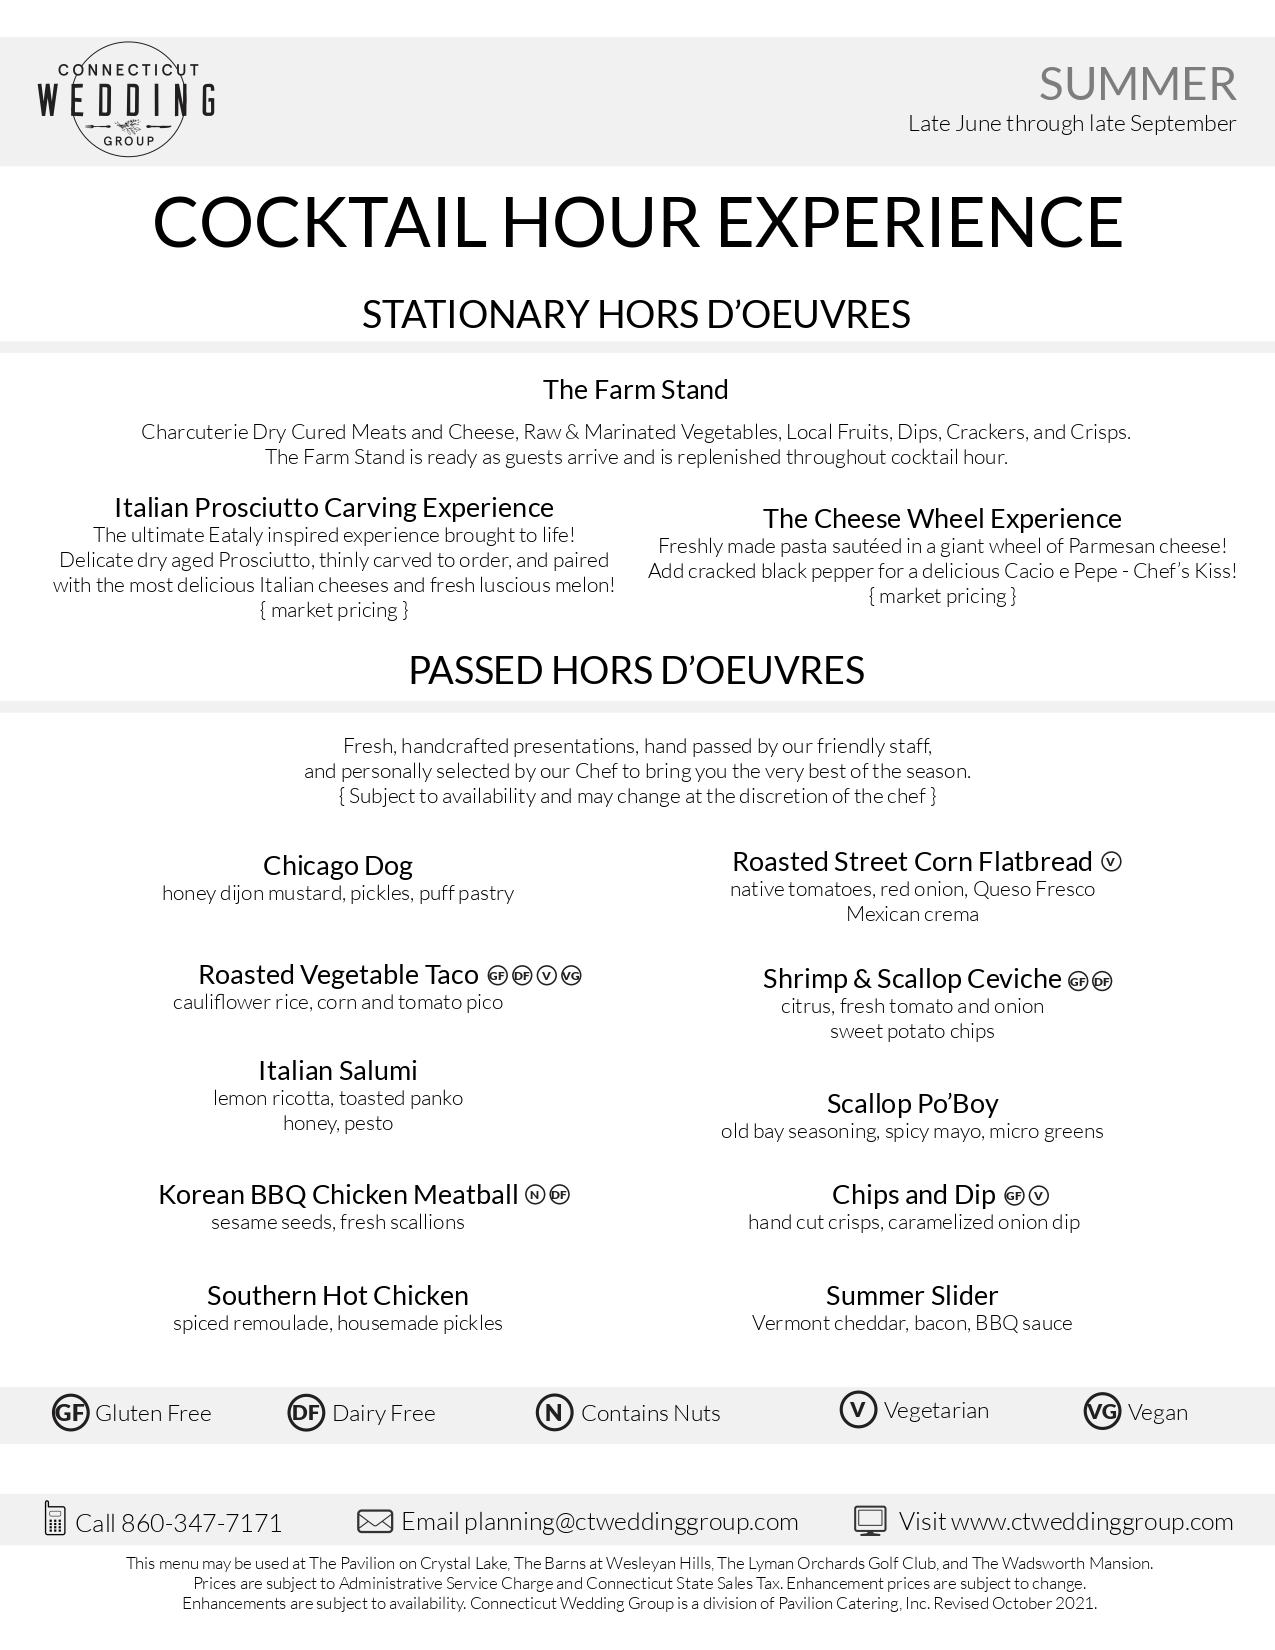 Summer-Cocktail-Hour-Culinary-Experiences-2022_NEW_page-0001-1